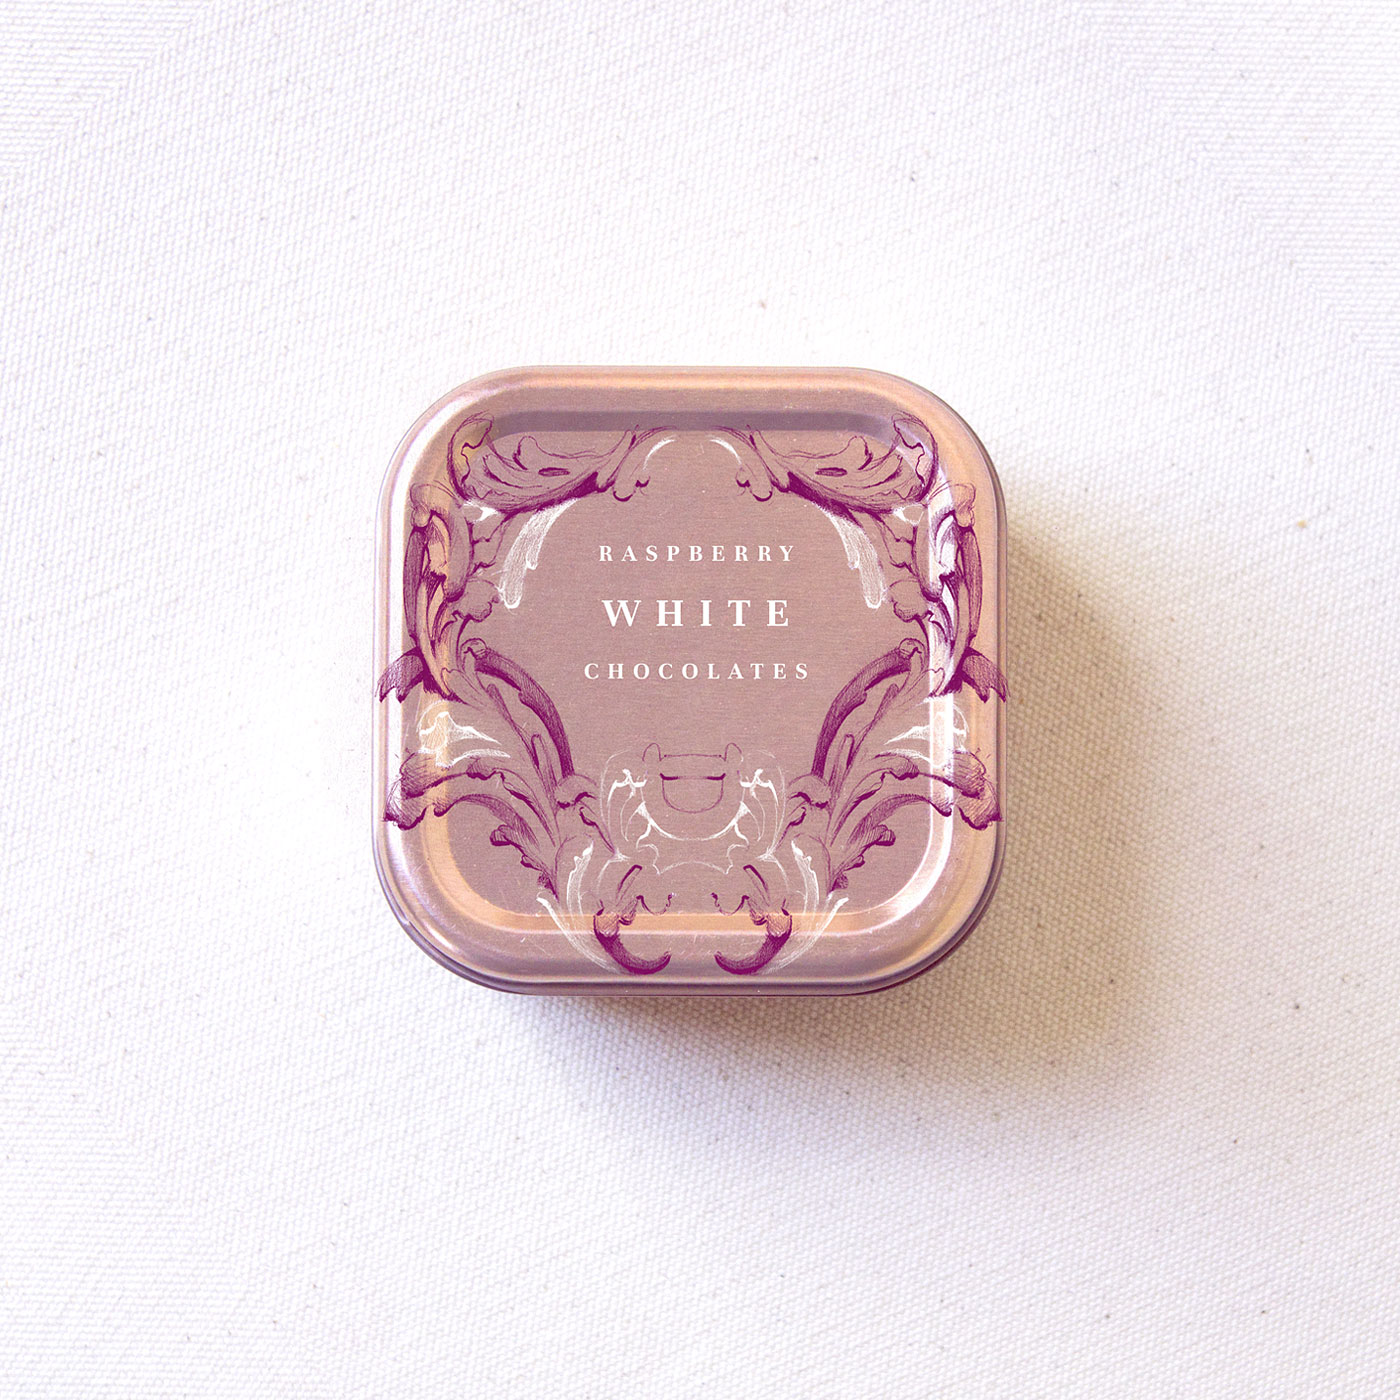 Rococo-inspired raspberry white chocolate metallic package illustration by Laura Dreyer.